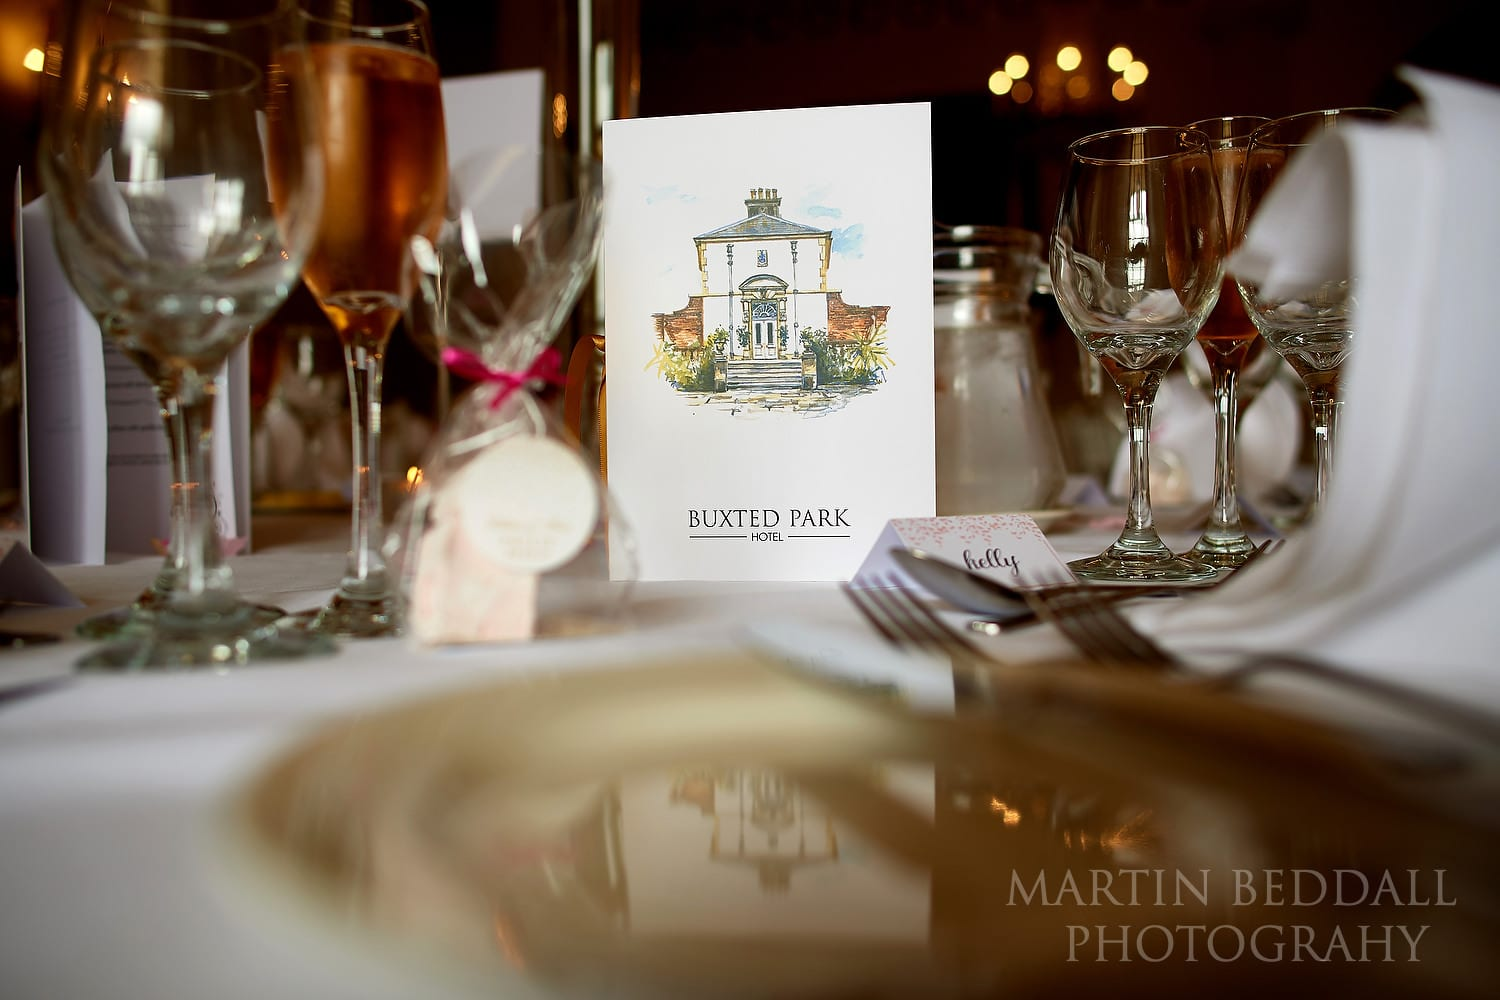 Buxted Park table setting